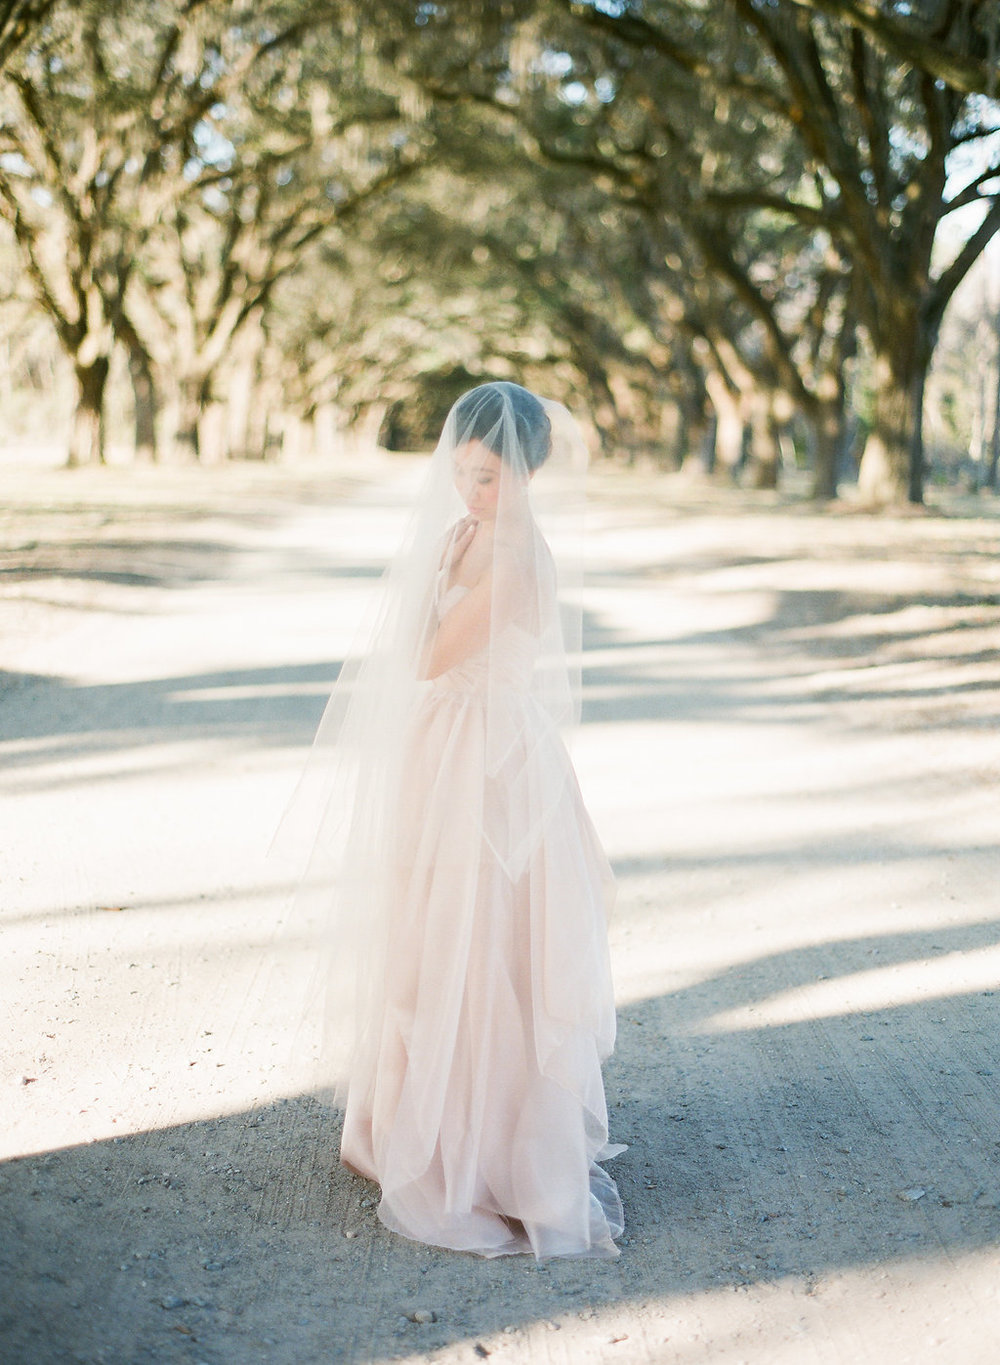 the-happy-bloom-design-studio-south-wormsloe-plantation-wedding-sarah-seven-blushing-ivory-and-beau-bridal-boutique-savannah-wedding-dresses-savannah-bridal-boutique-savannah-weddings-savannah-wedding-planner-savannah-event-planner-22.jpg